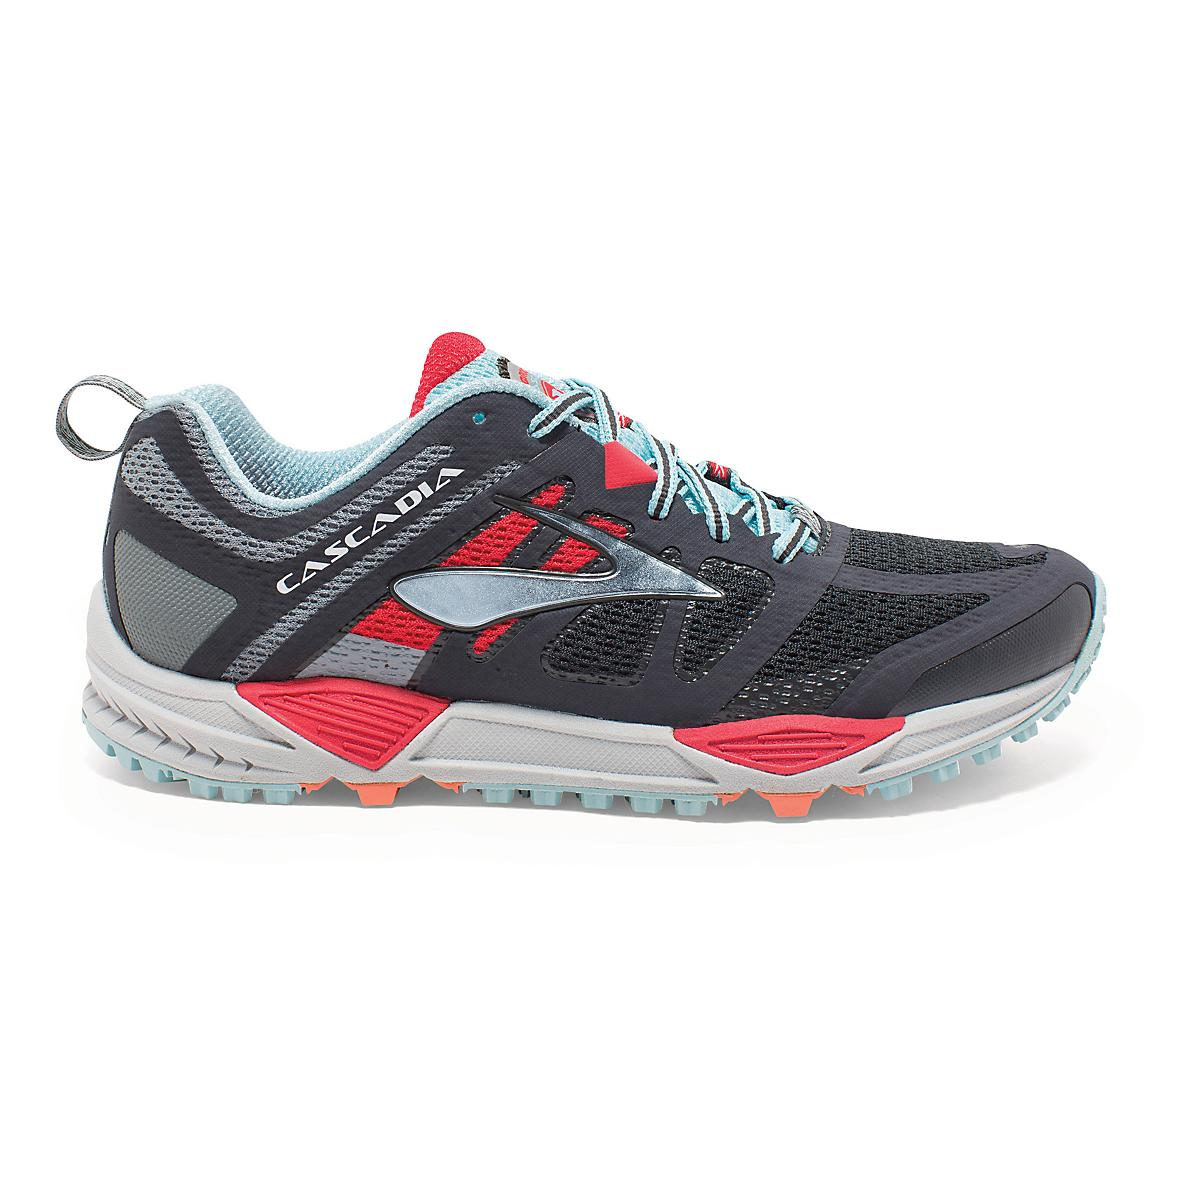 e70c28fd4f6 Womens Brooks Cascadia 11 Trail Running Shoe at Road Runner Sports